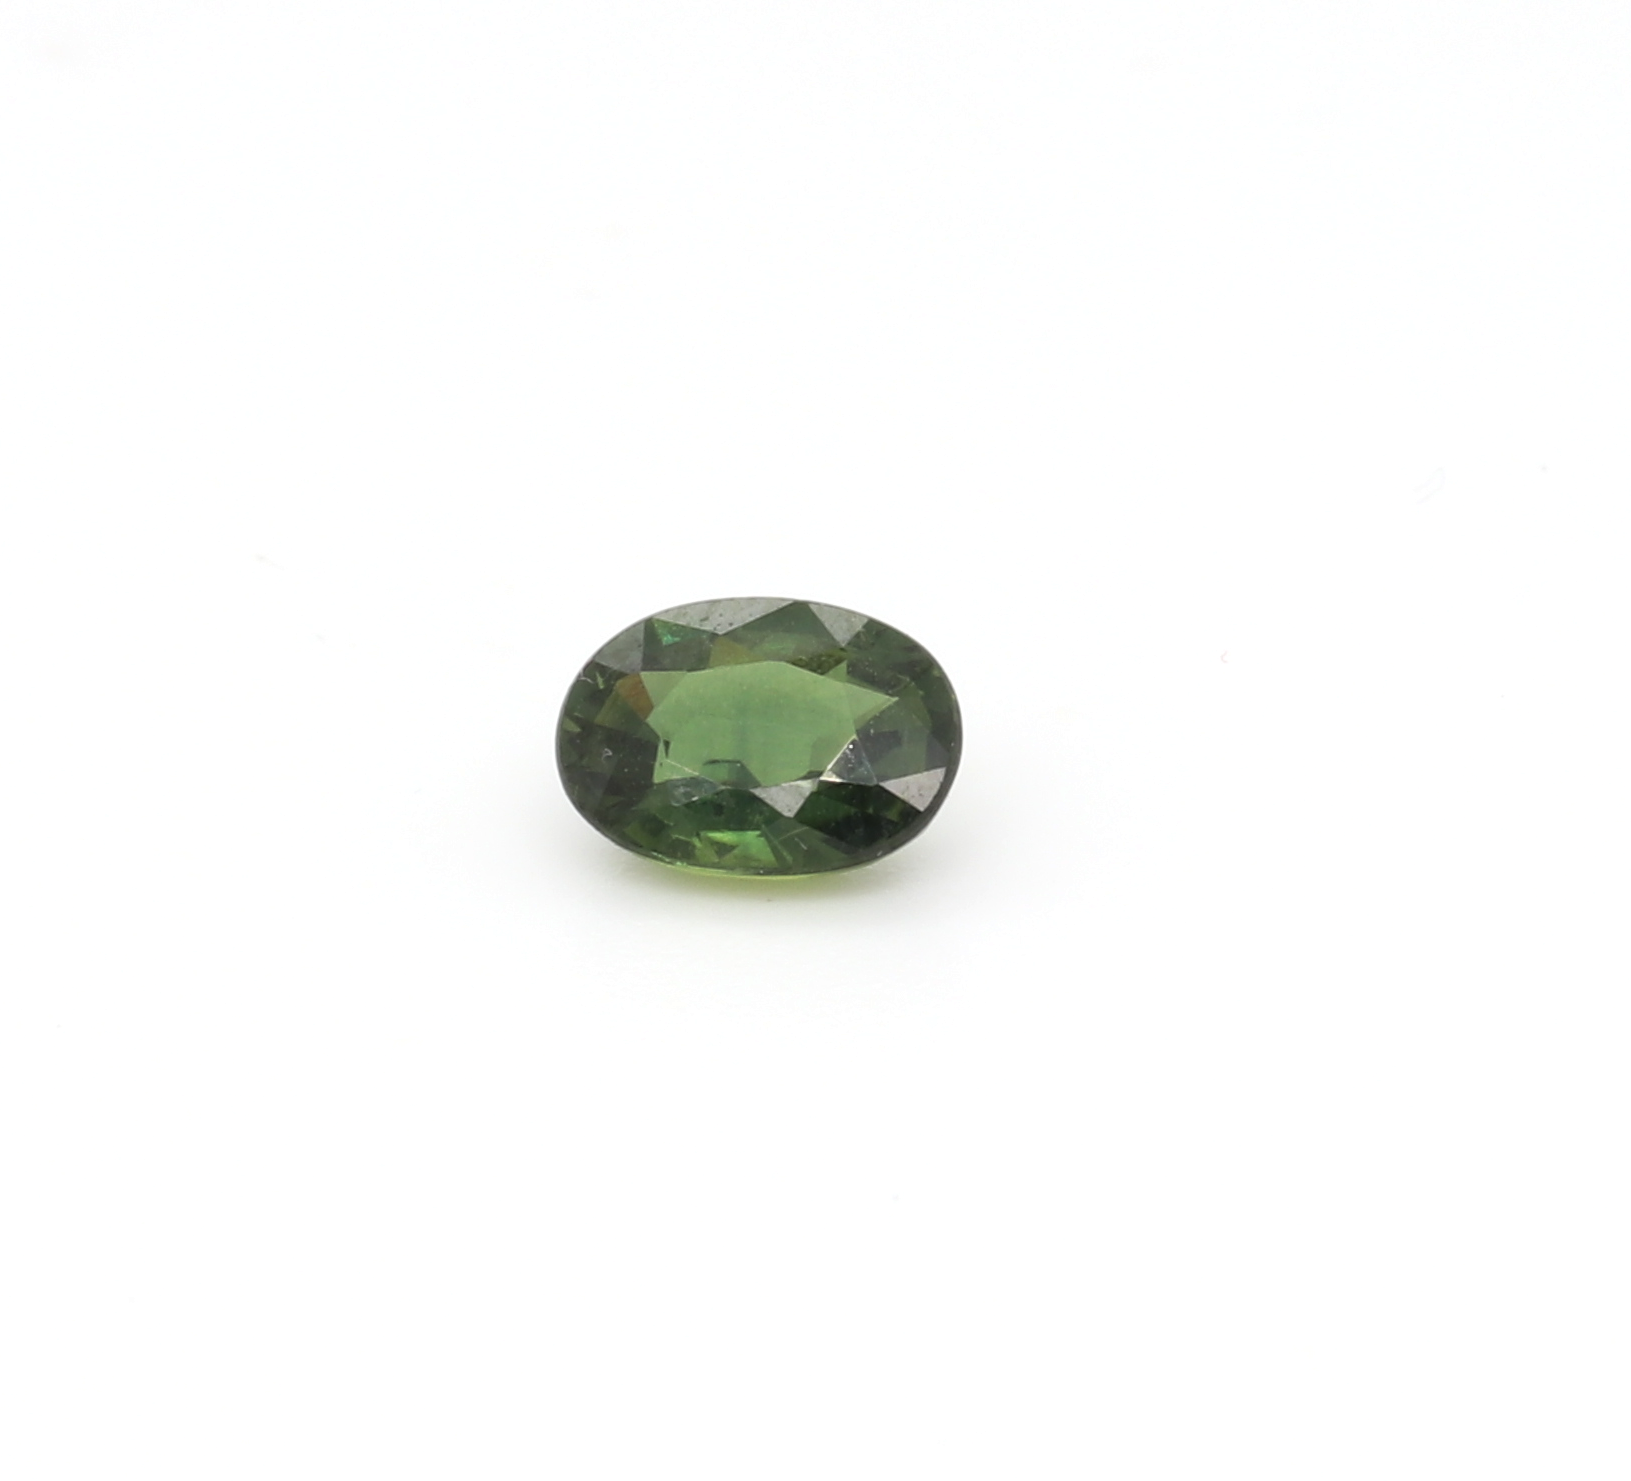 1.07 Carat Loose Oval Green Sapphire Gia Certified